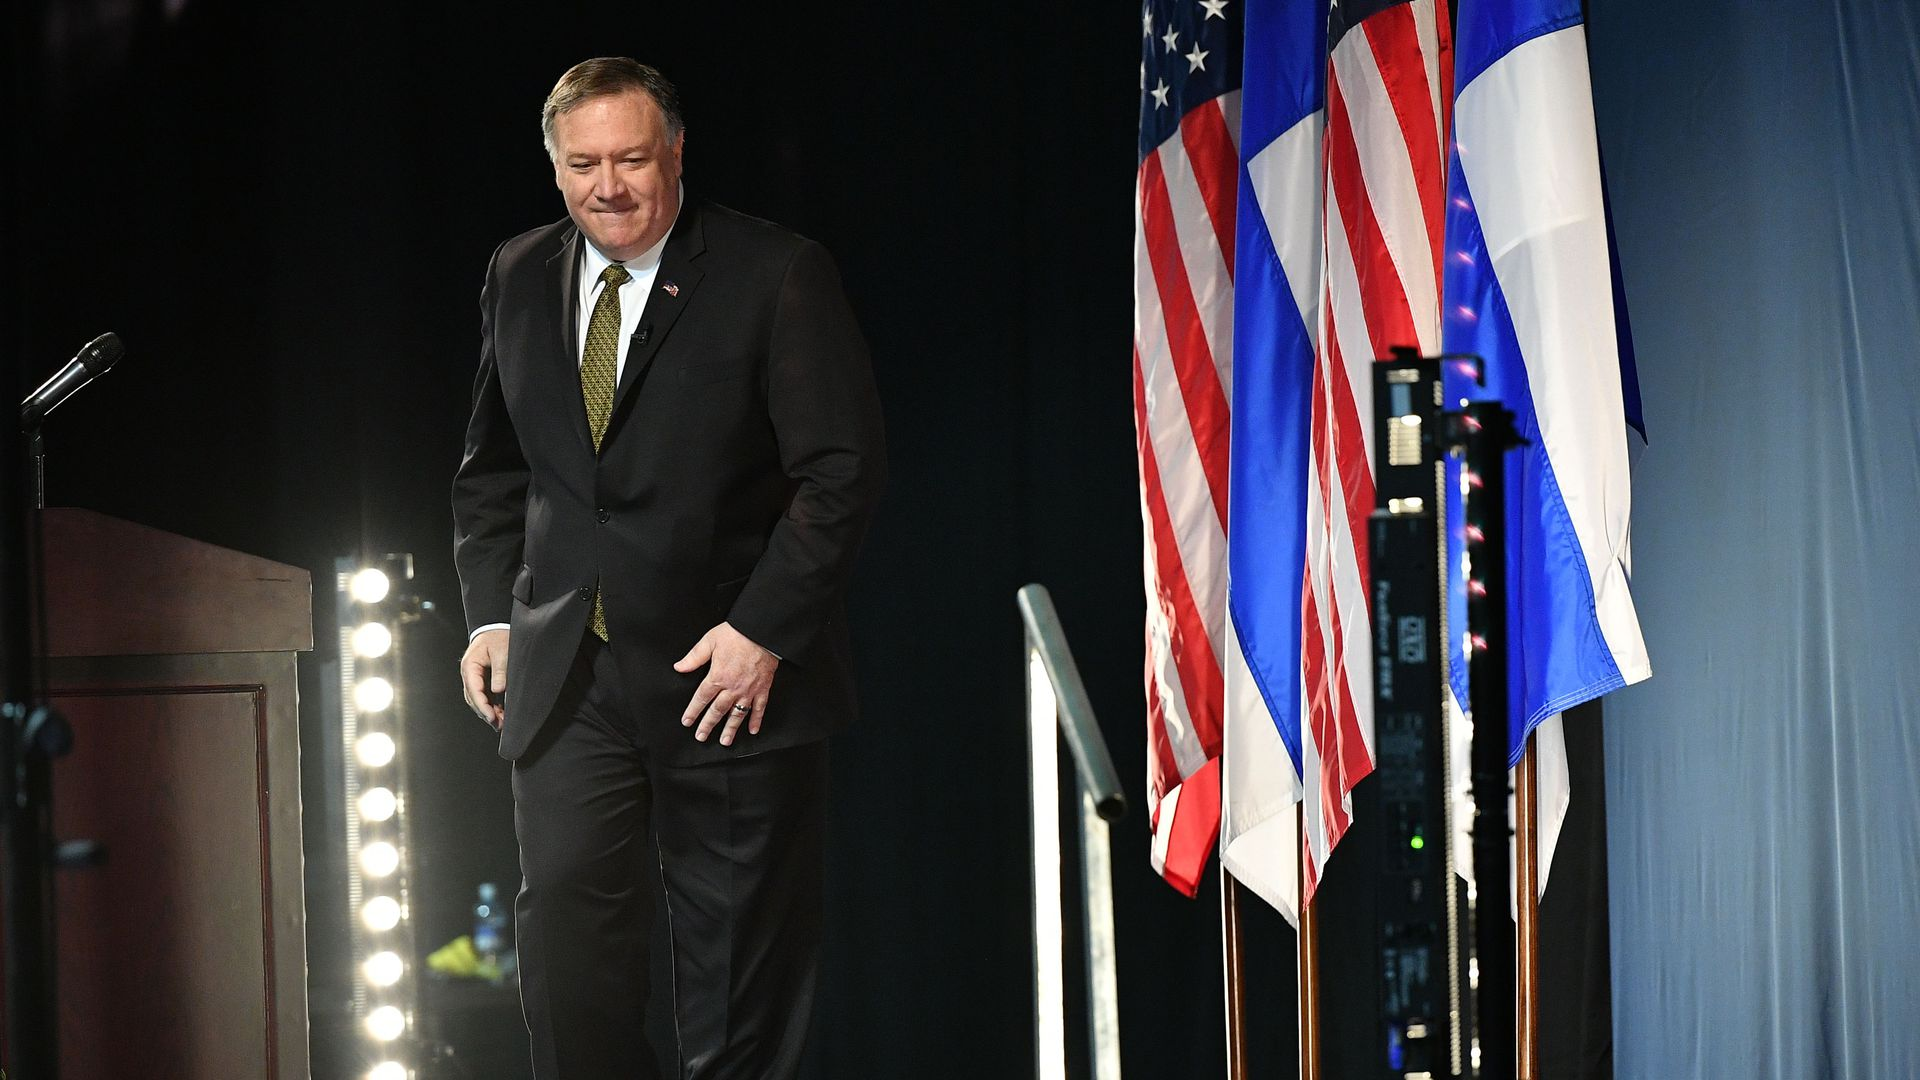 In this image, Pompeo steps down from the stage at the Arctic Council. A row of American and Finland flags are next to him.